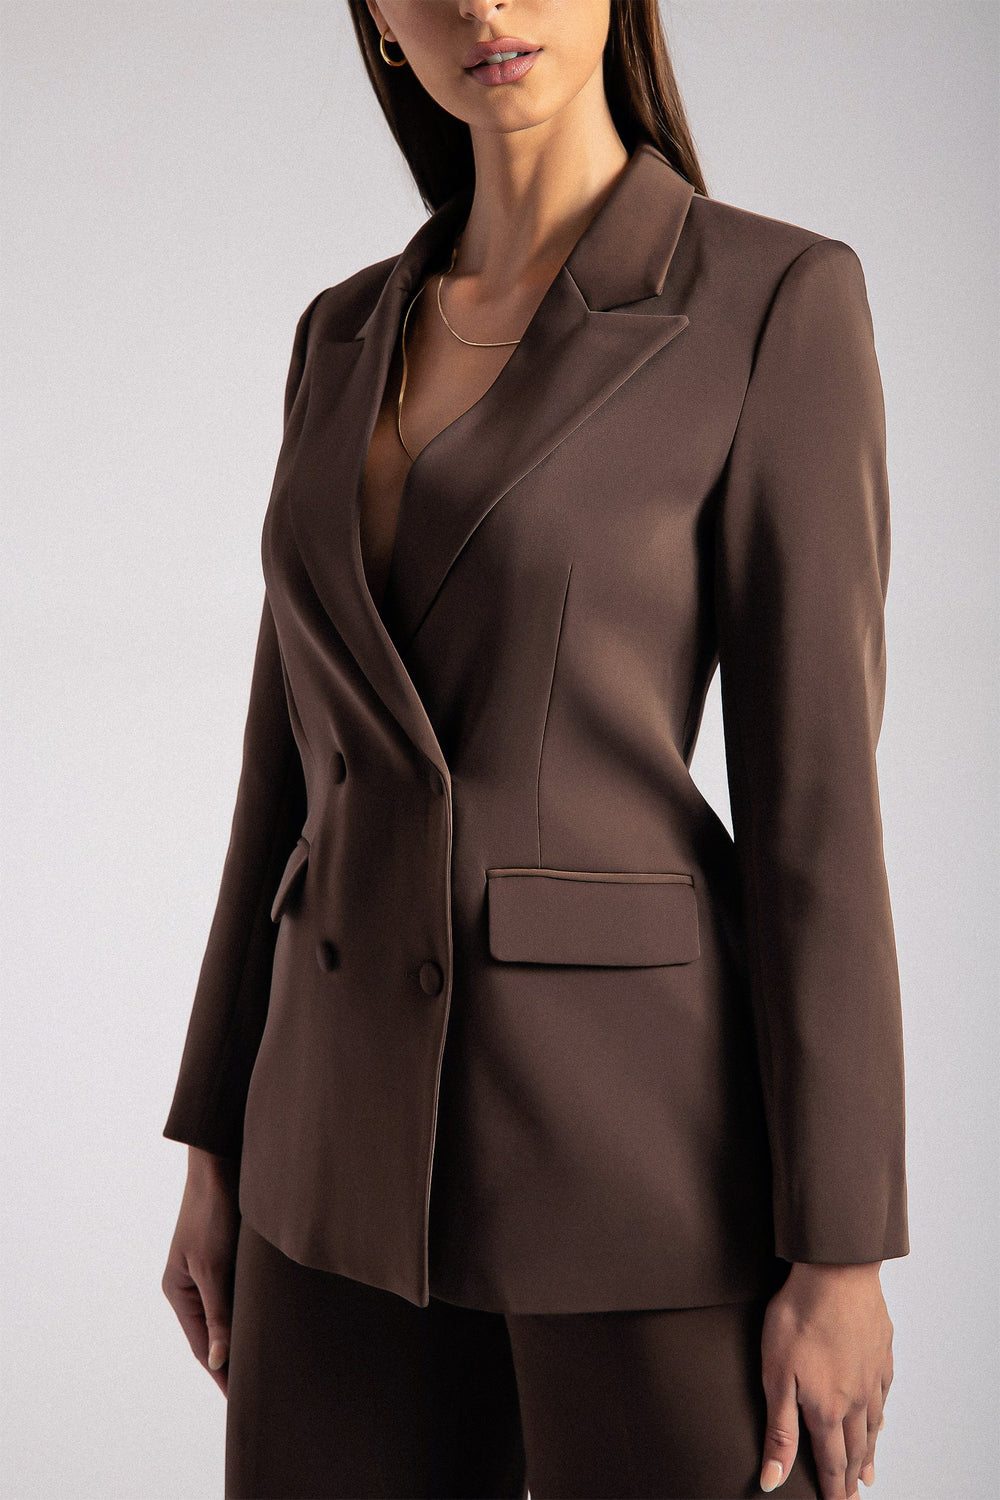 Elena Oversized Blazer- Chocolate